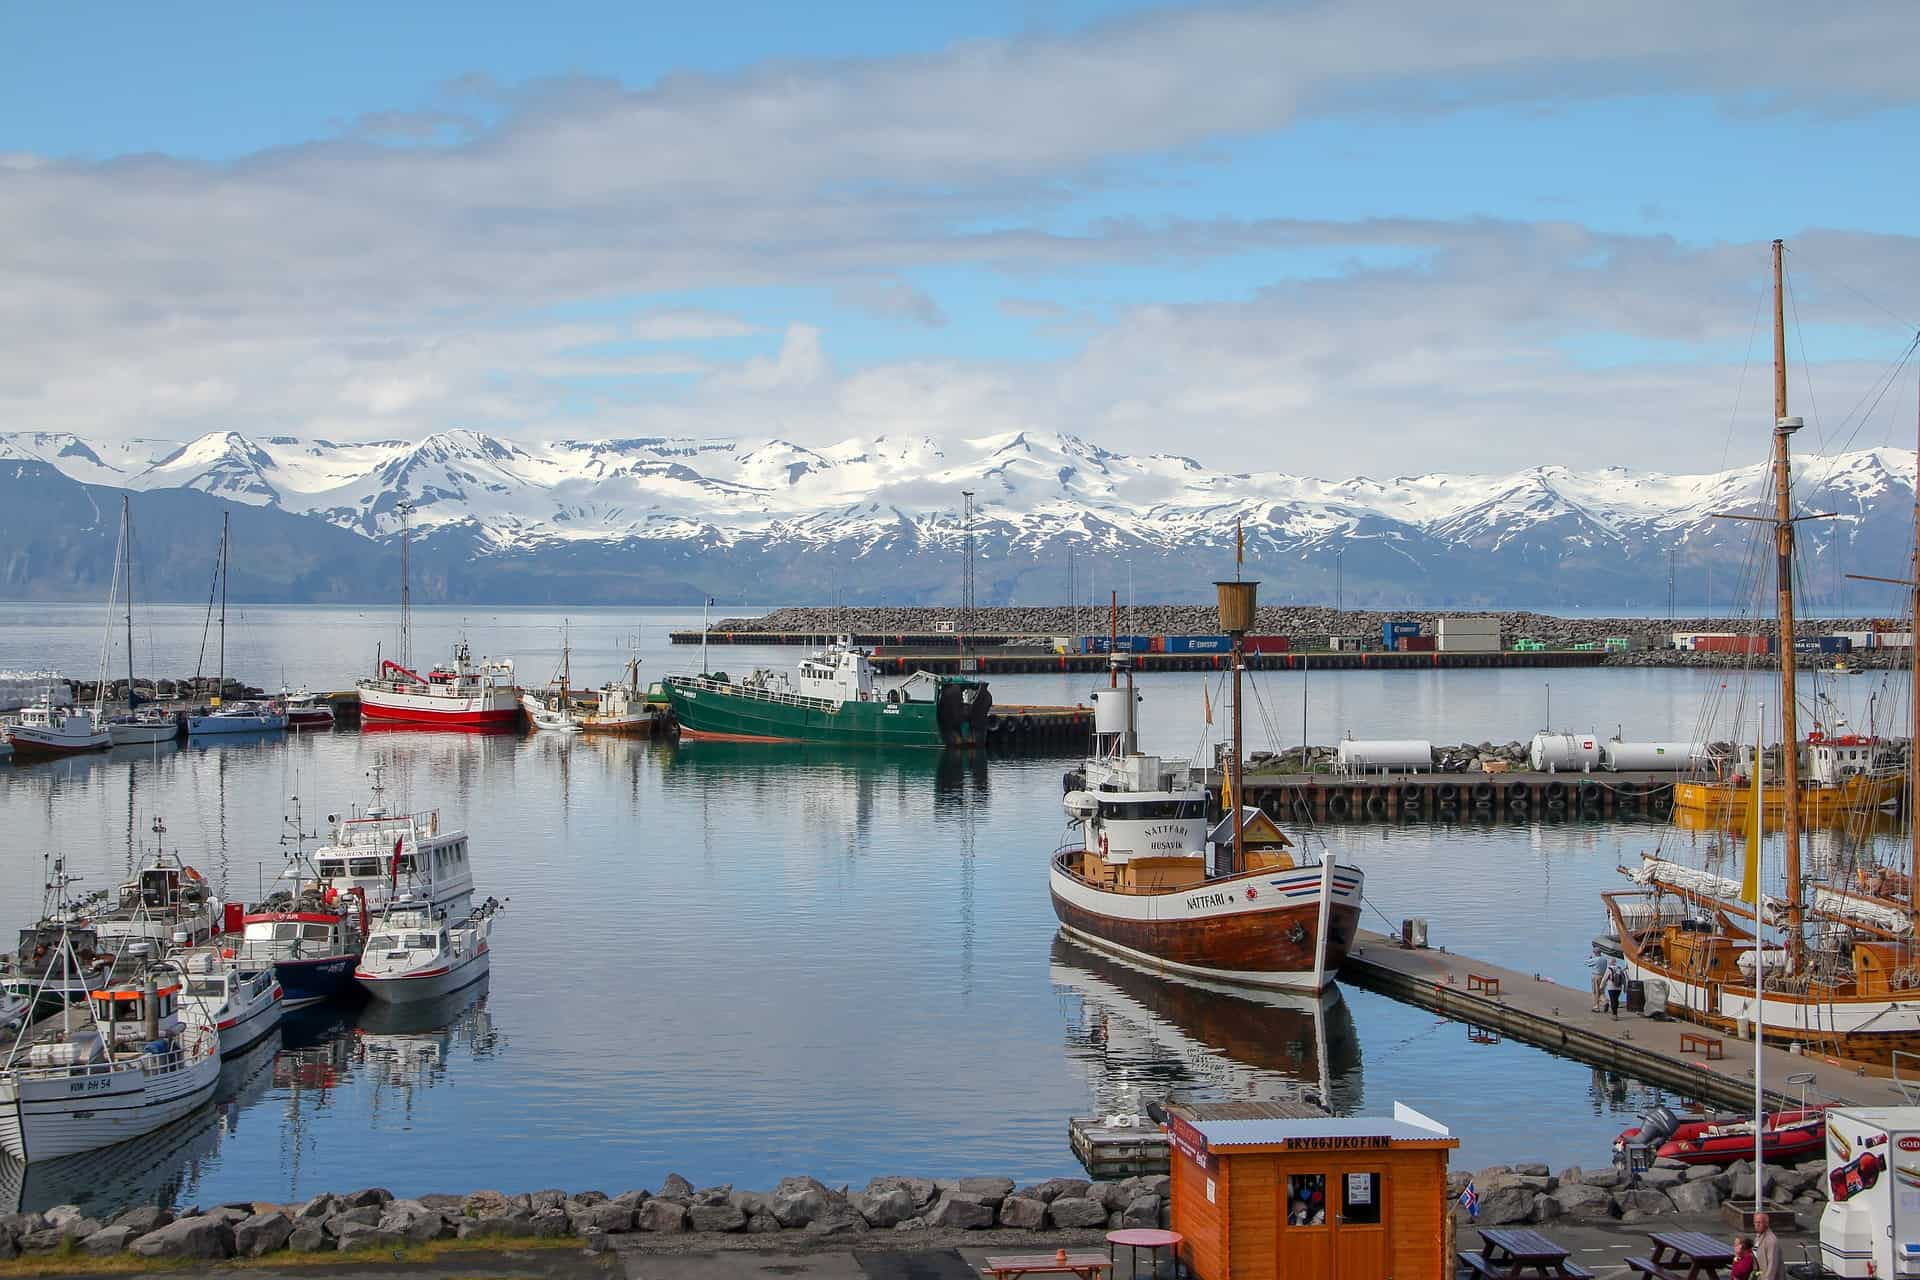 Iceland is situated on the edge of the North Pole and is a country like no other.